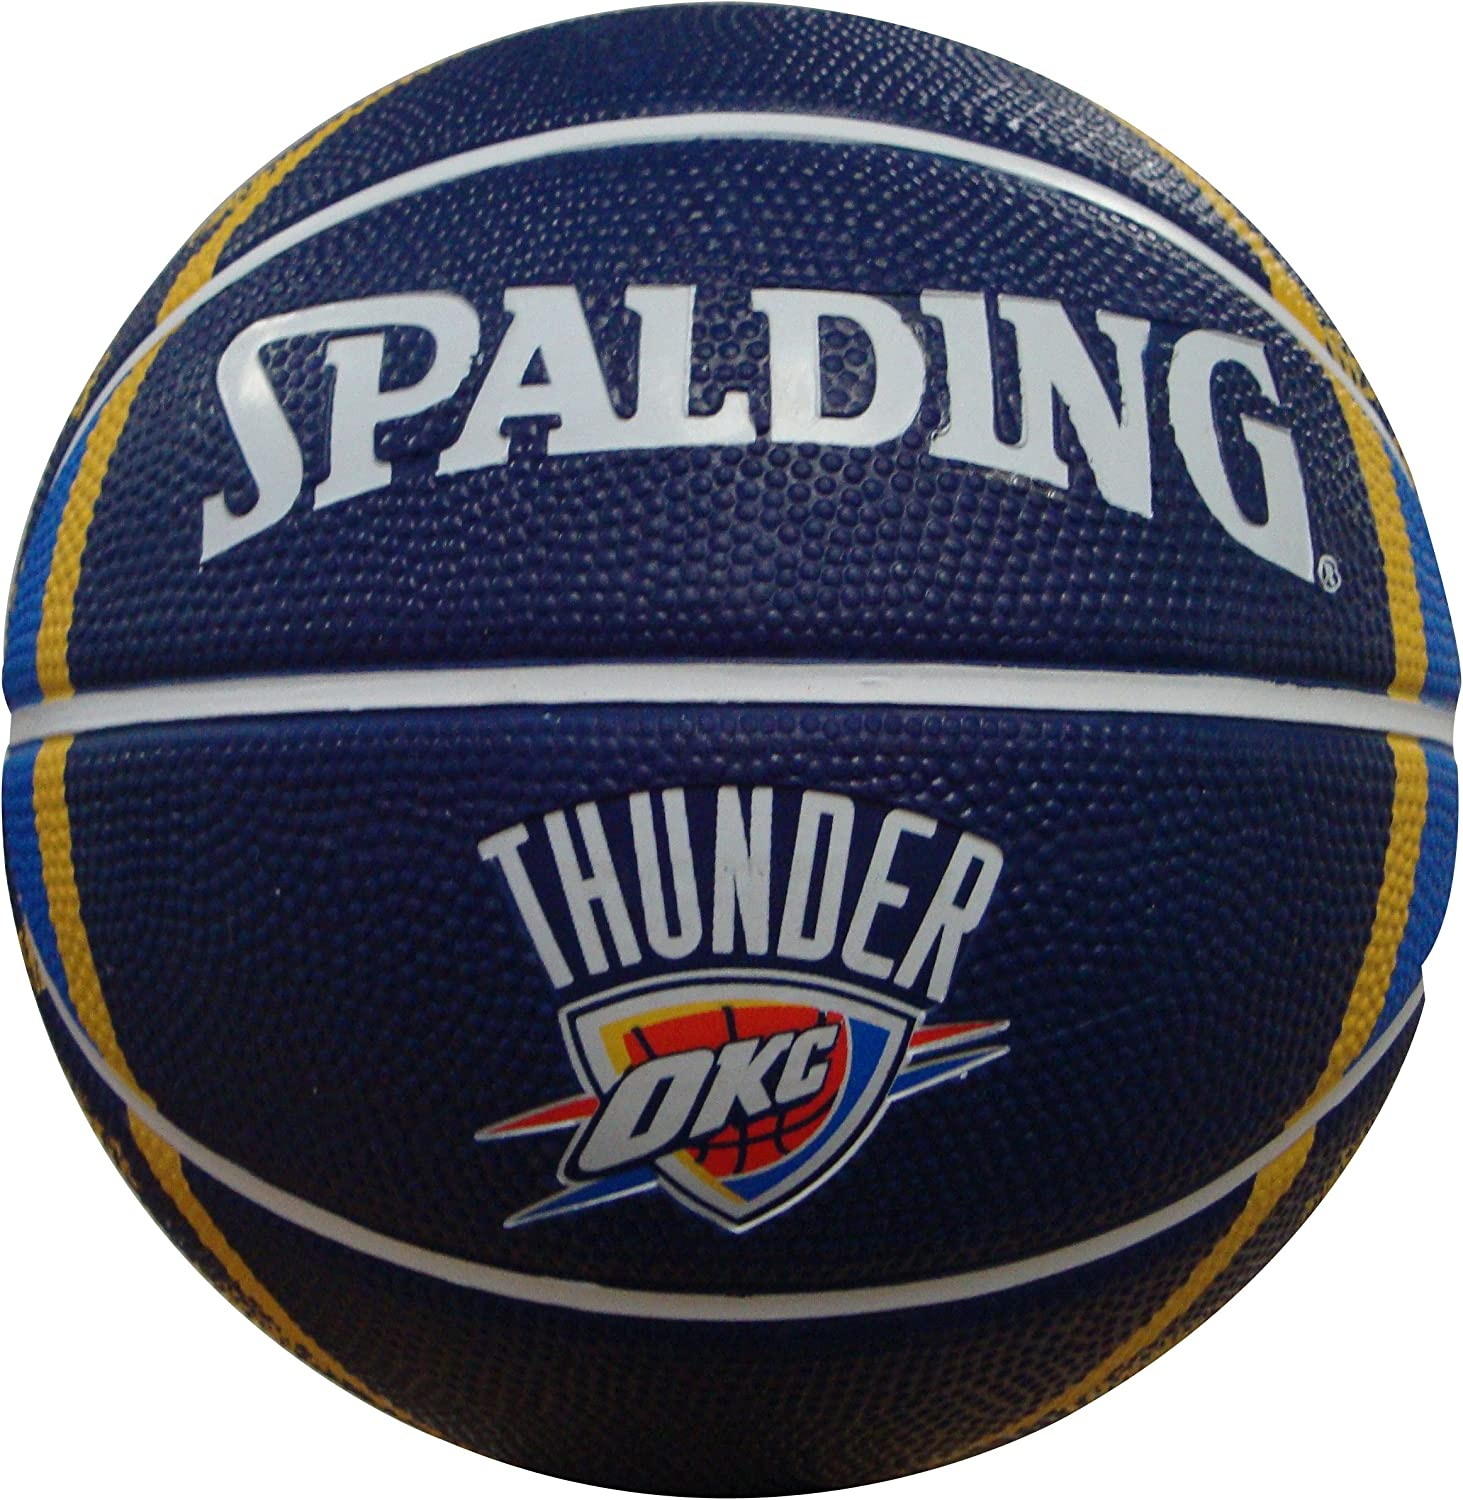 NBA Oklahoma City Thunder Mini Basketball, 7-Inches : Sports Fan Basketballs : Sports & Outdoors